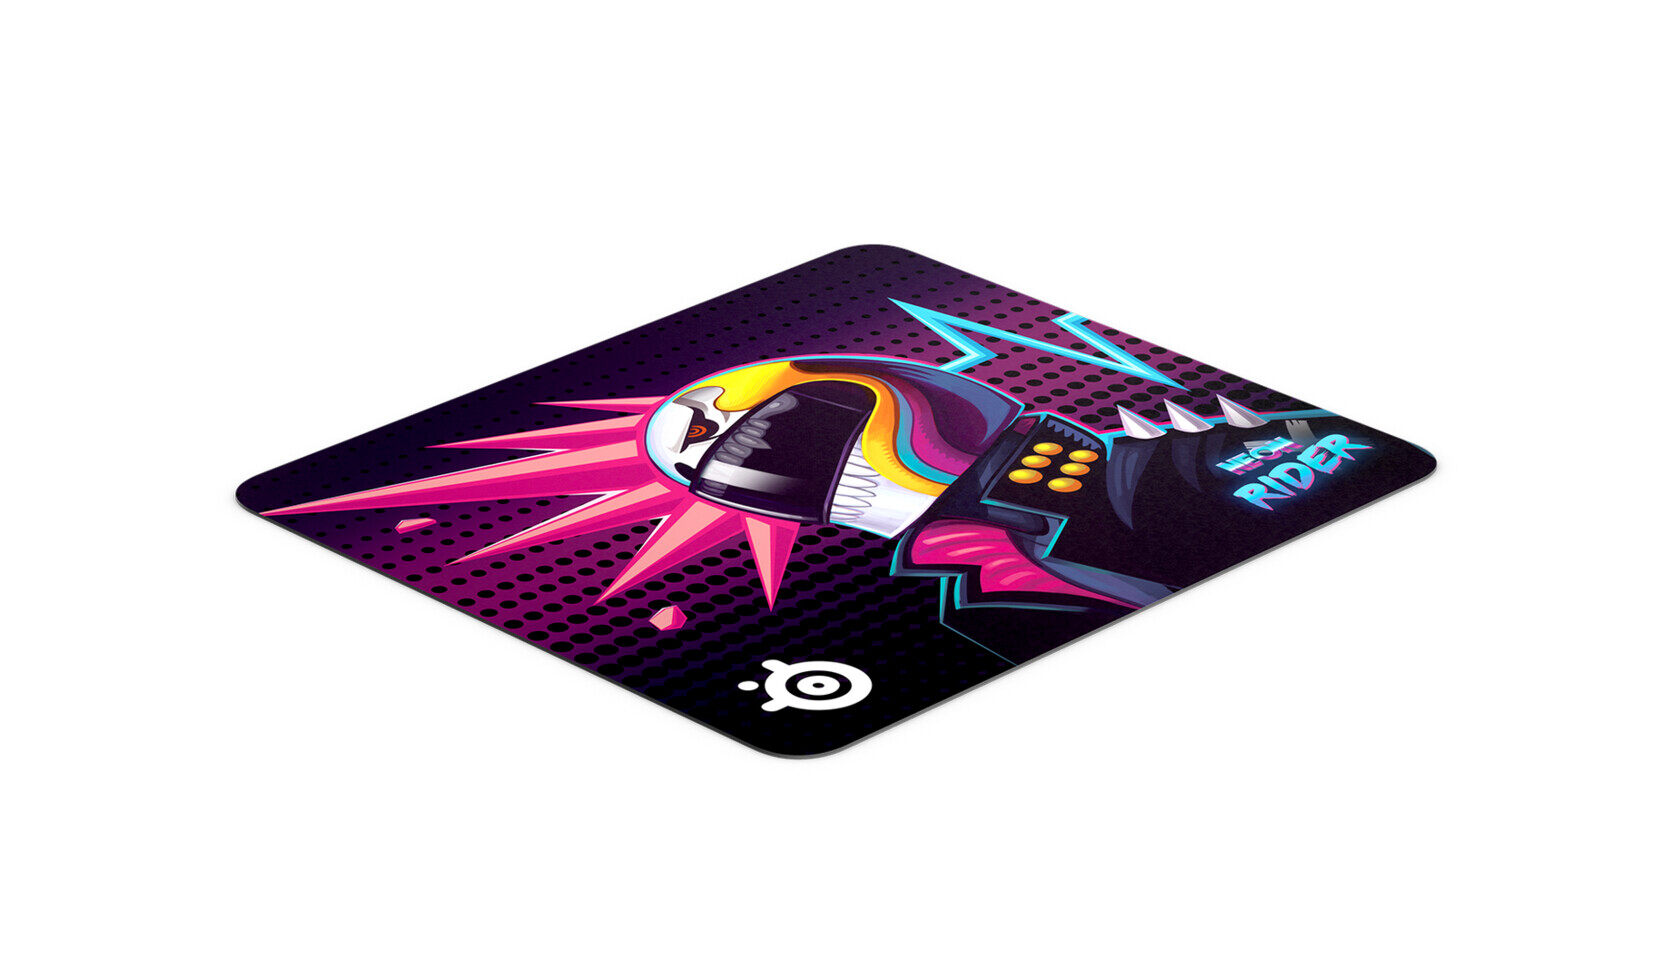 Steelseries Gaming Mouse Pad QCK Large Neon Rider Edition with Non-Slip Rubber Base, Durable and Washable for Easy Cleaning, Micro-Woven Cloth, Pinpoint Mouse Accuary